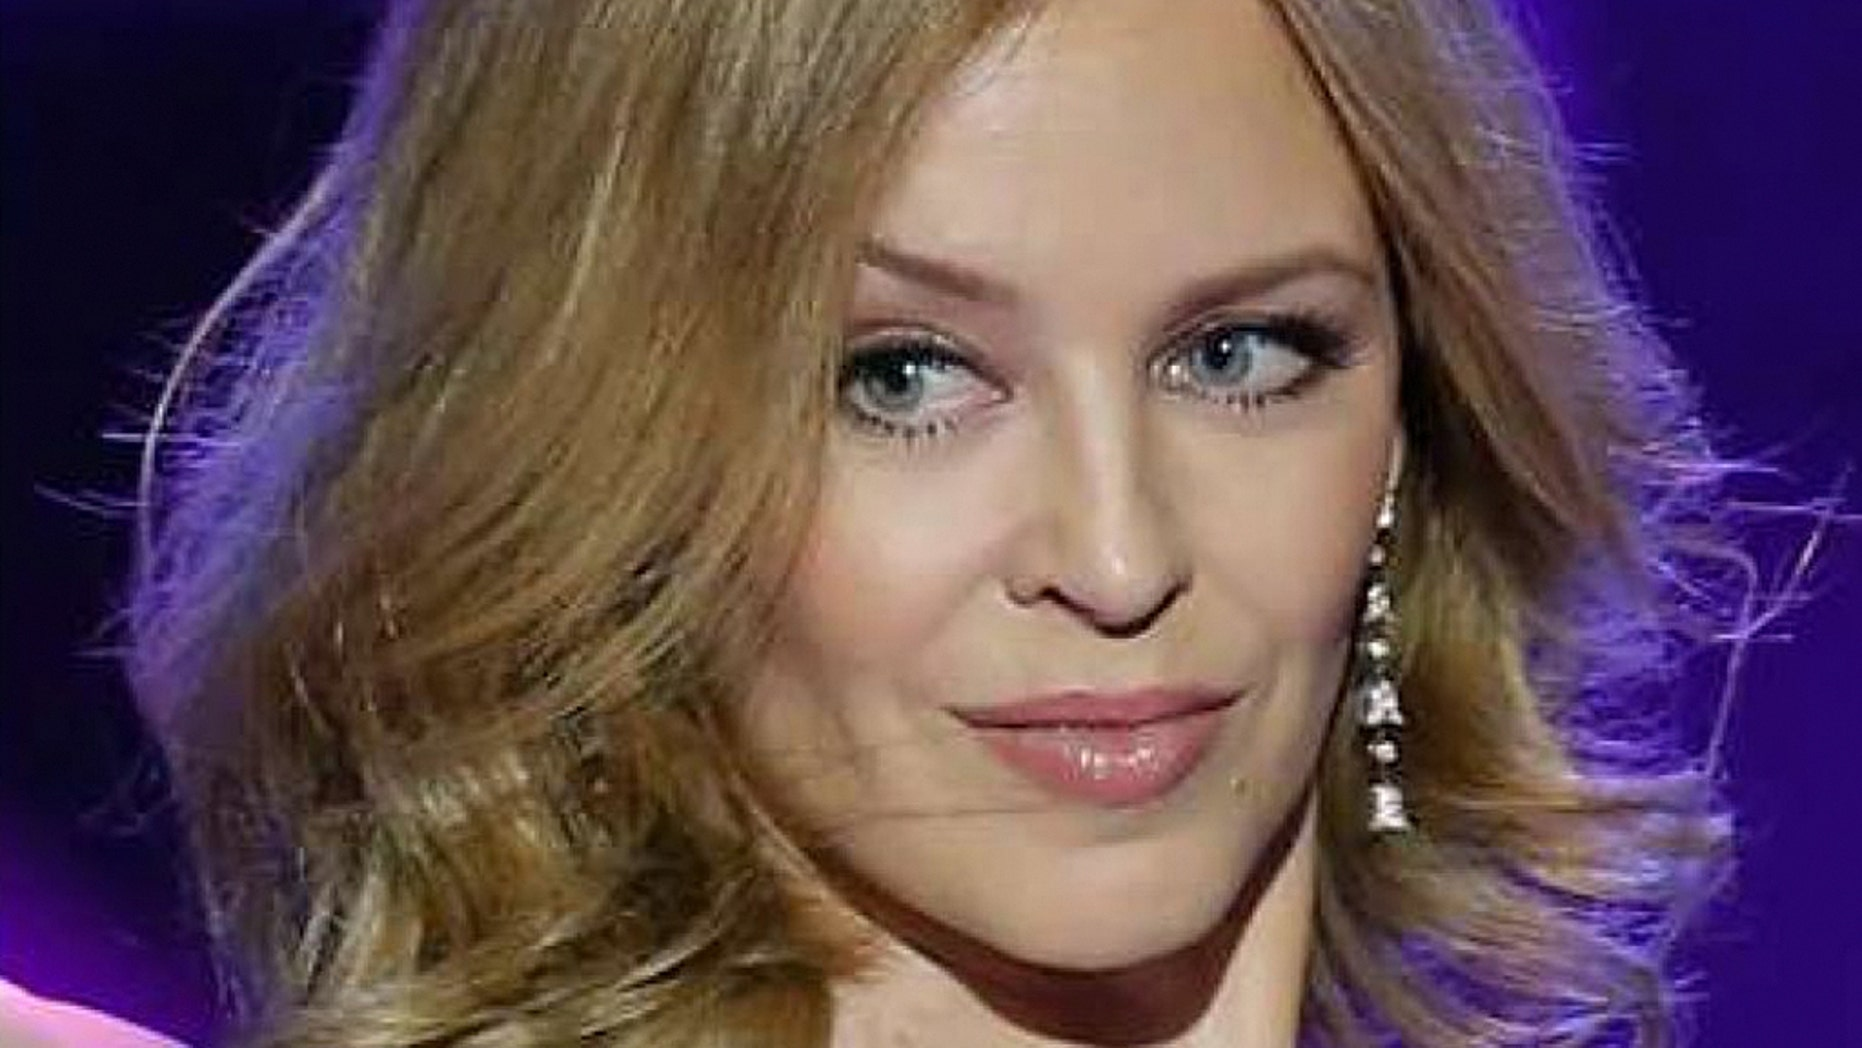 Kylie Minogue: Man warned after harassing pop star